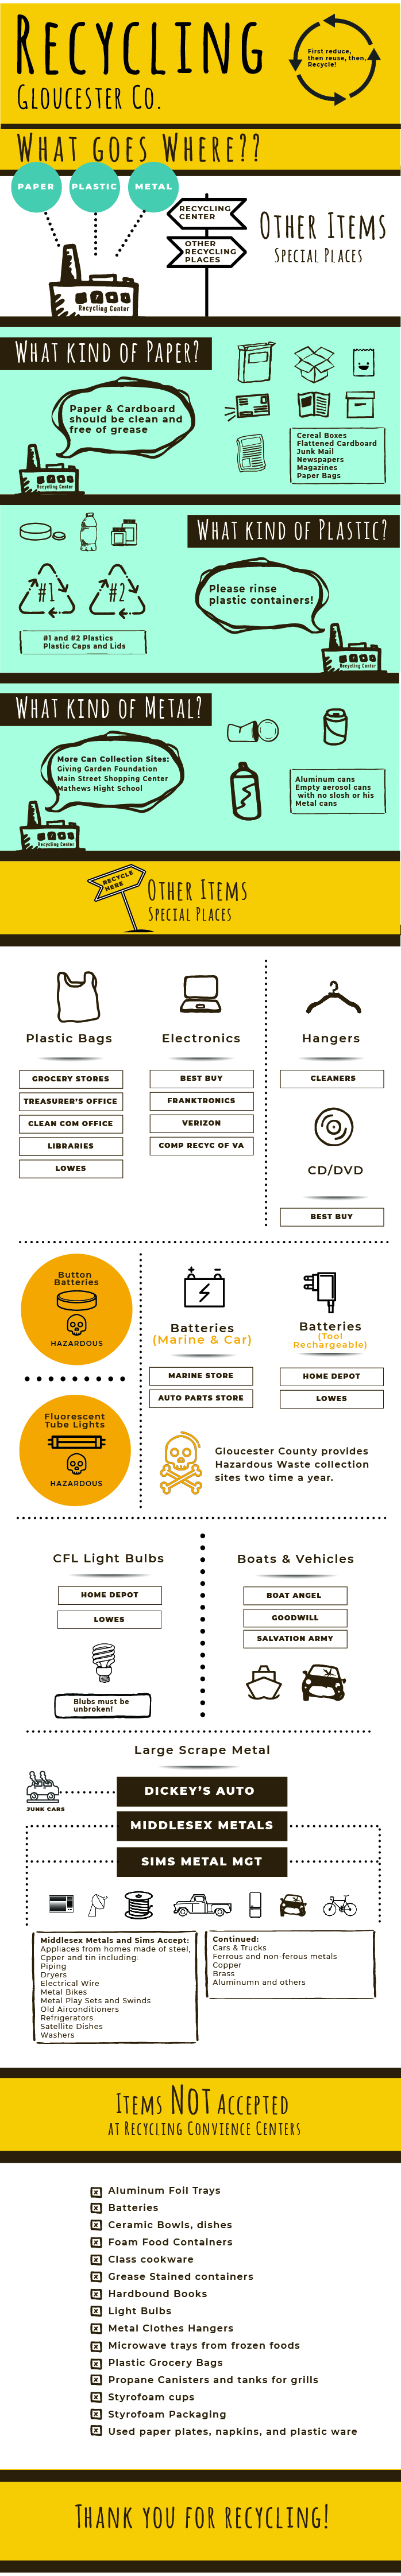 info graphic with image of items to be recycled